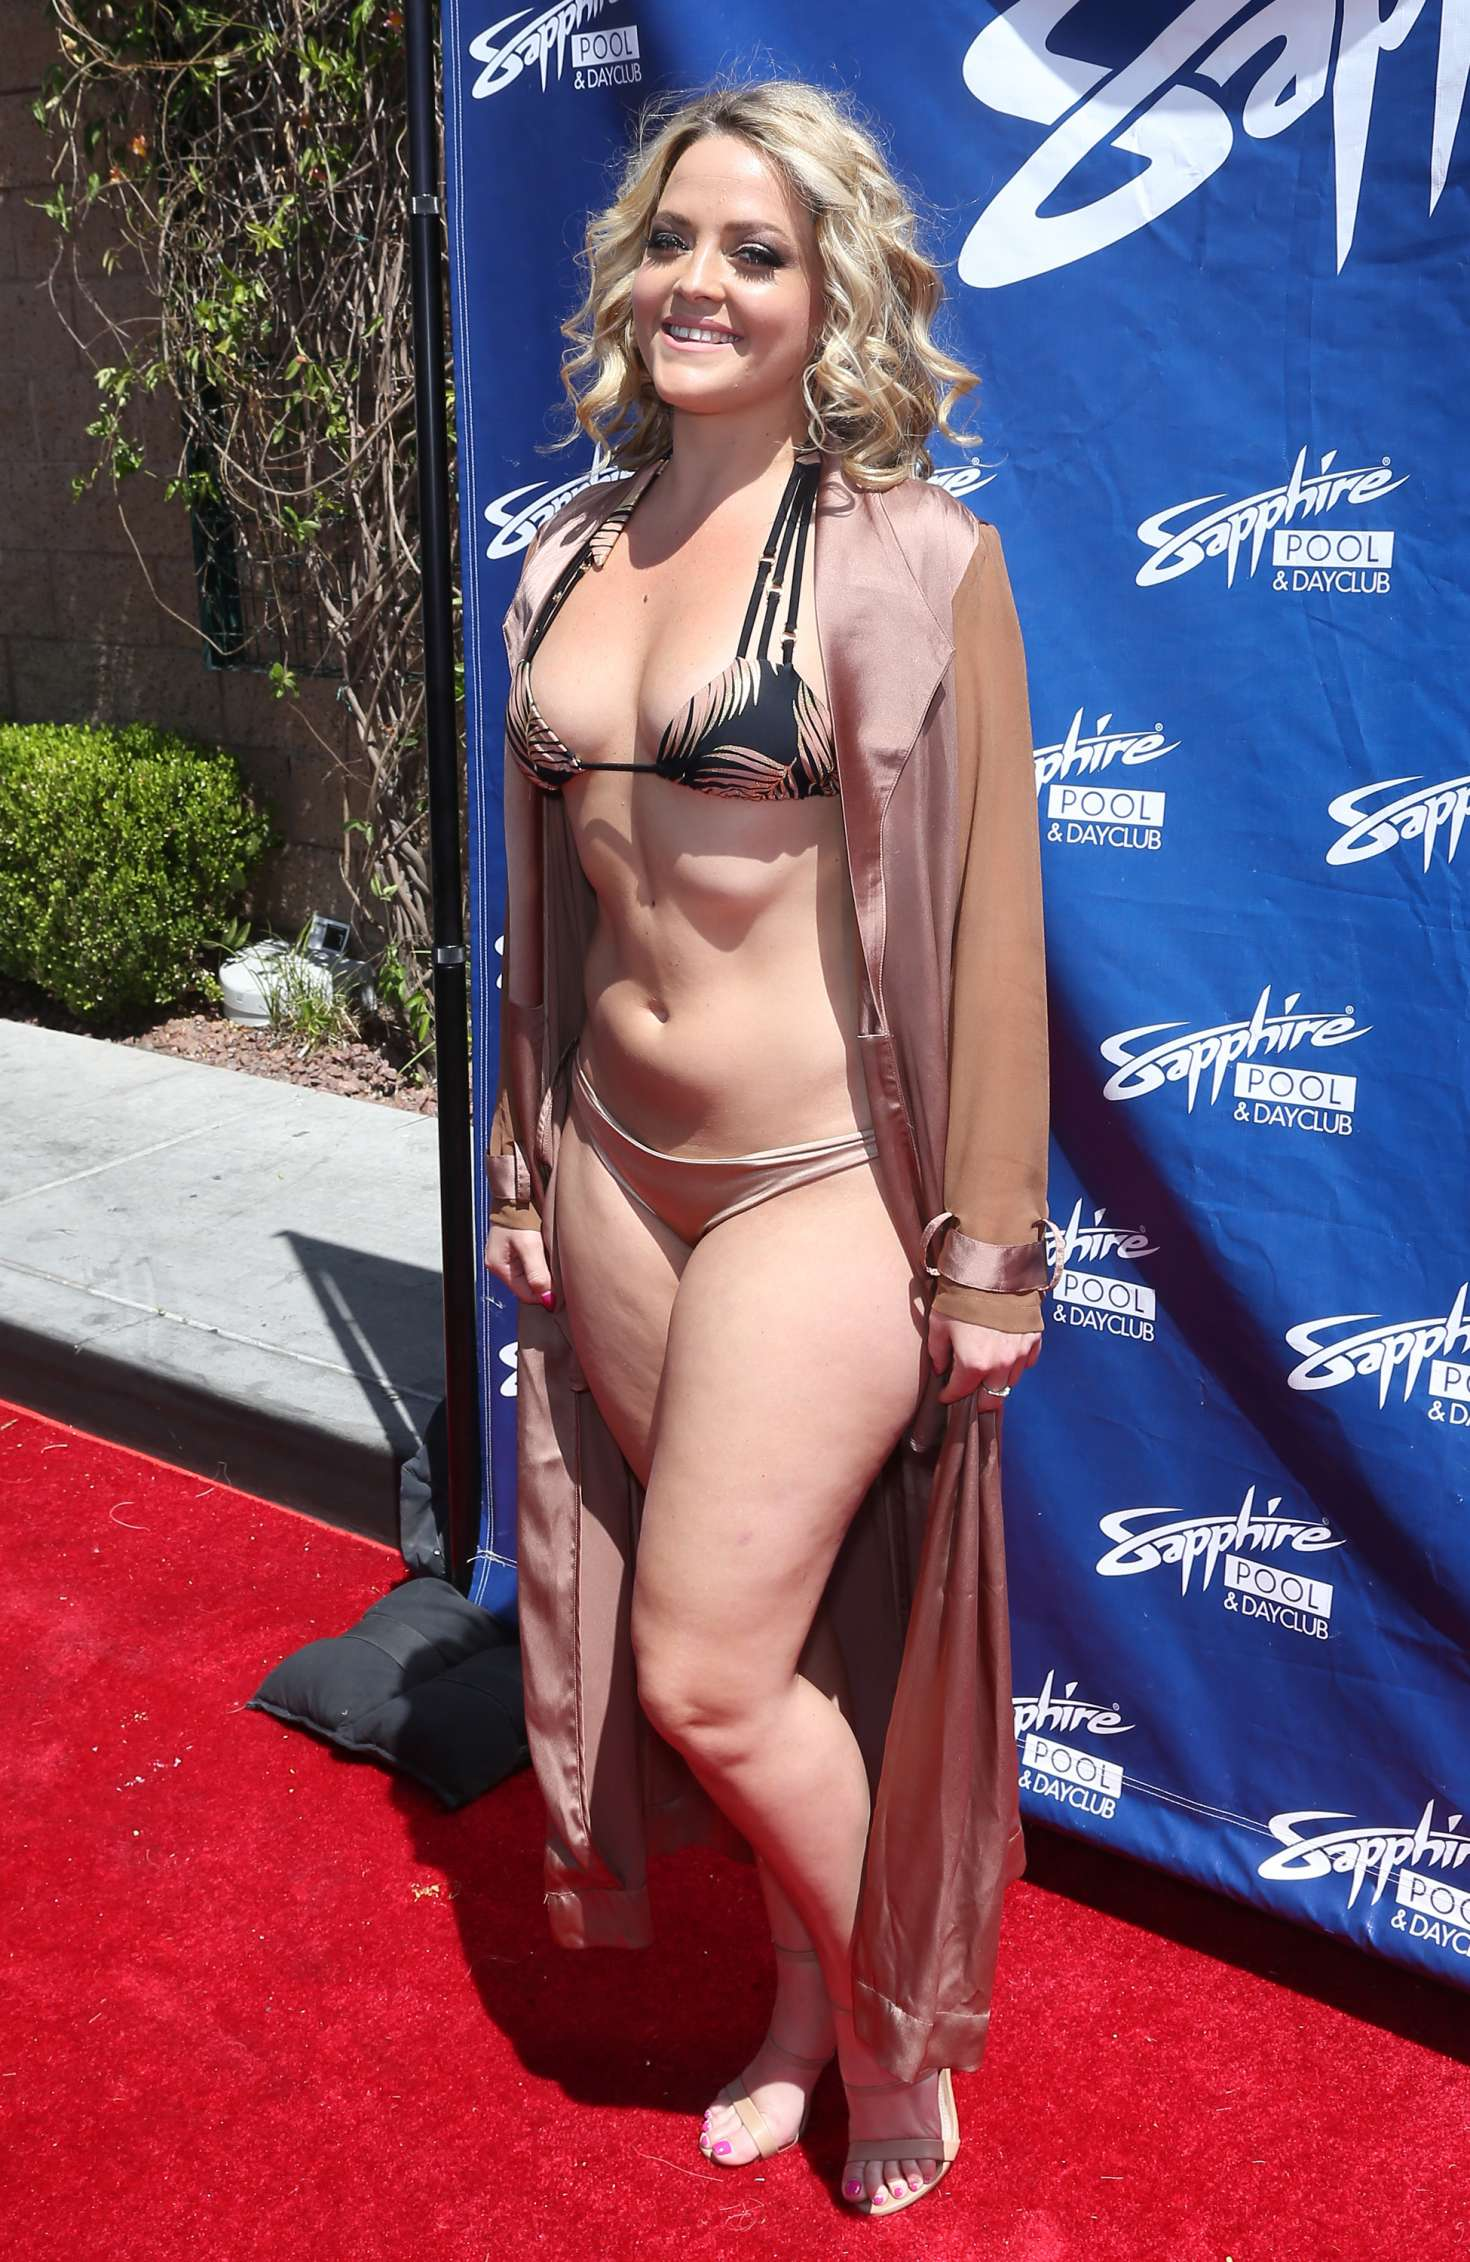 Alexis Texas: Blac Chyna hosts The Afternoon at Sapphire ...